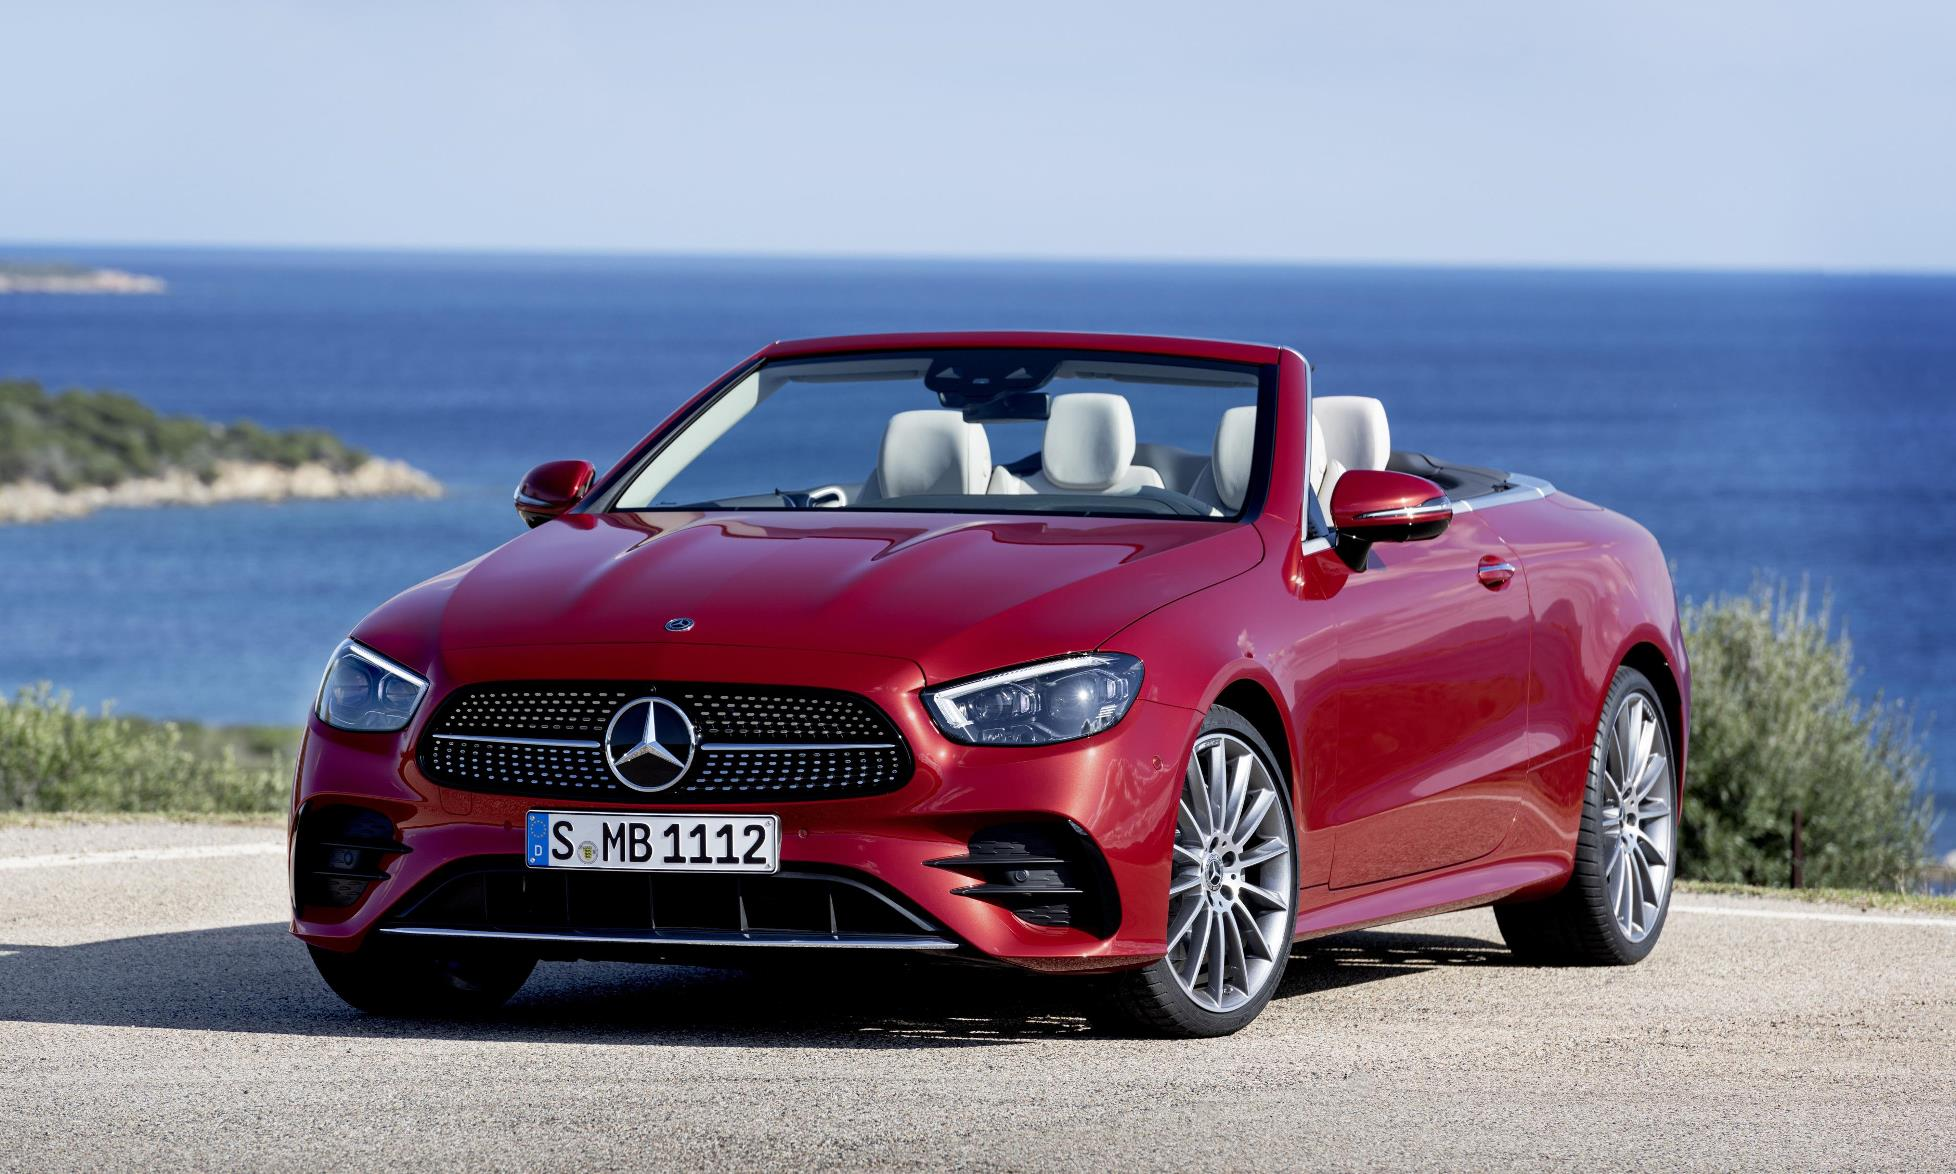 Facelifted Mercedes-Benz E-Class Cabrio